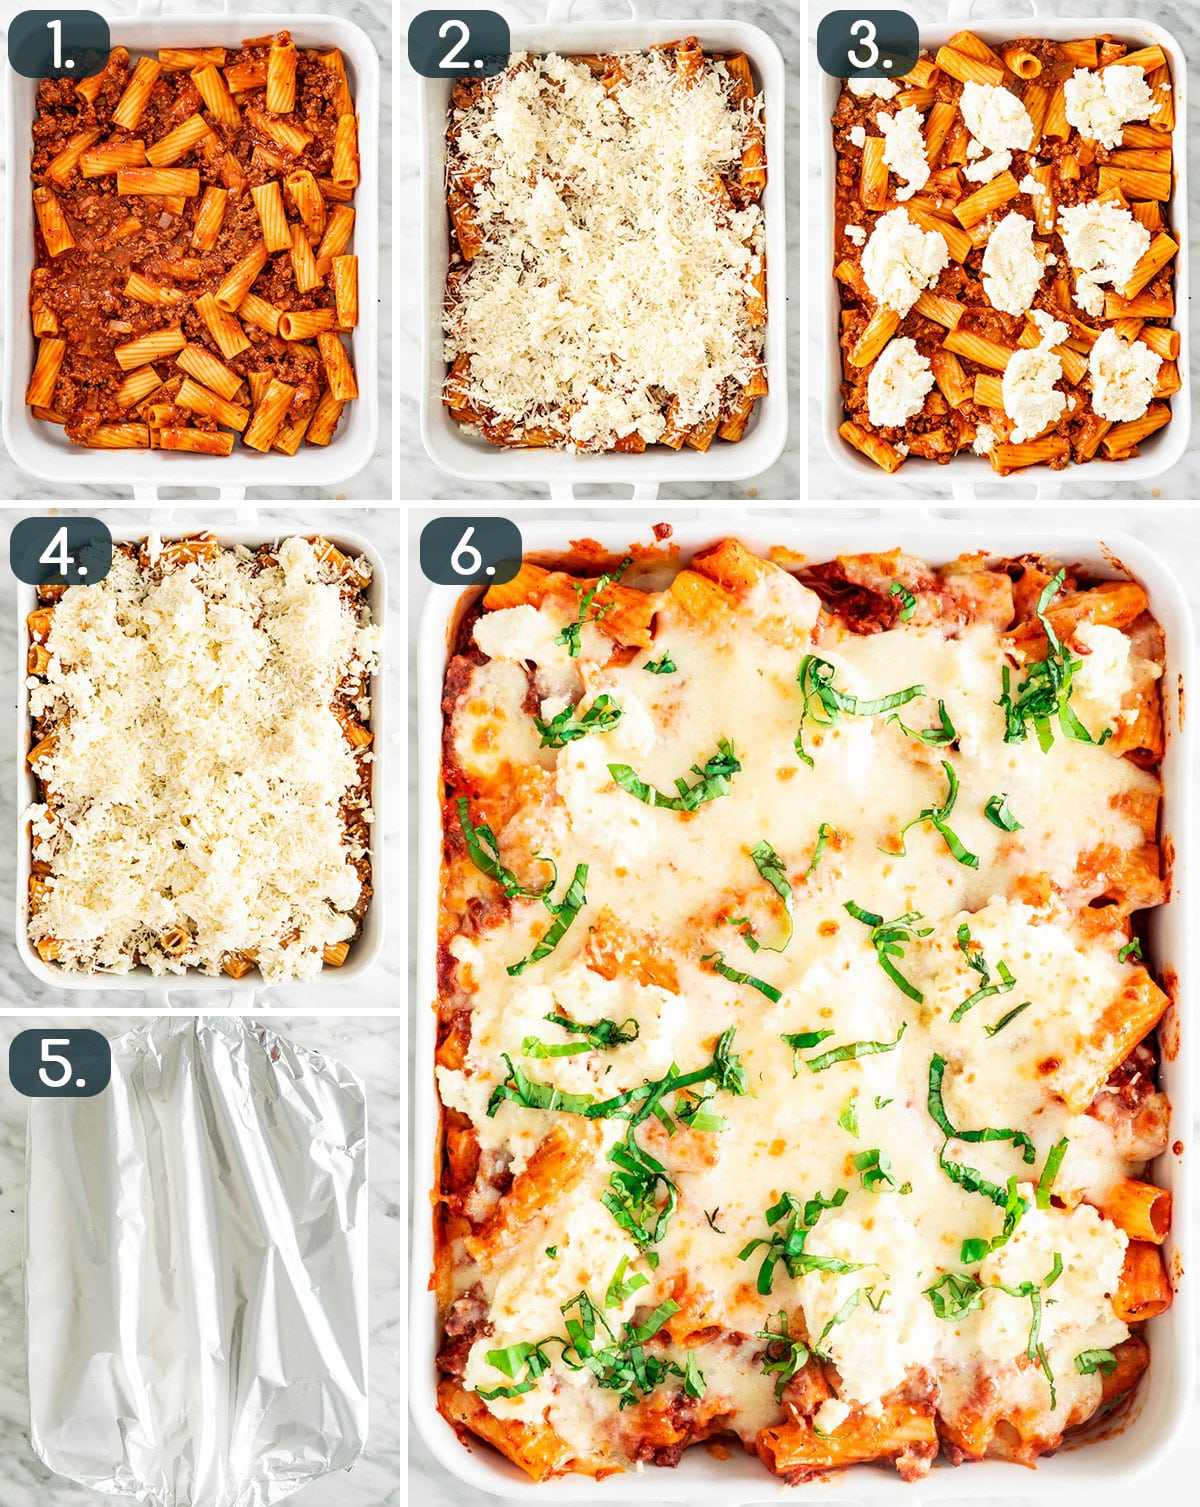 process shots showing how to assemble baked ziti